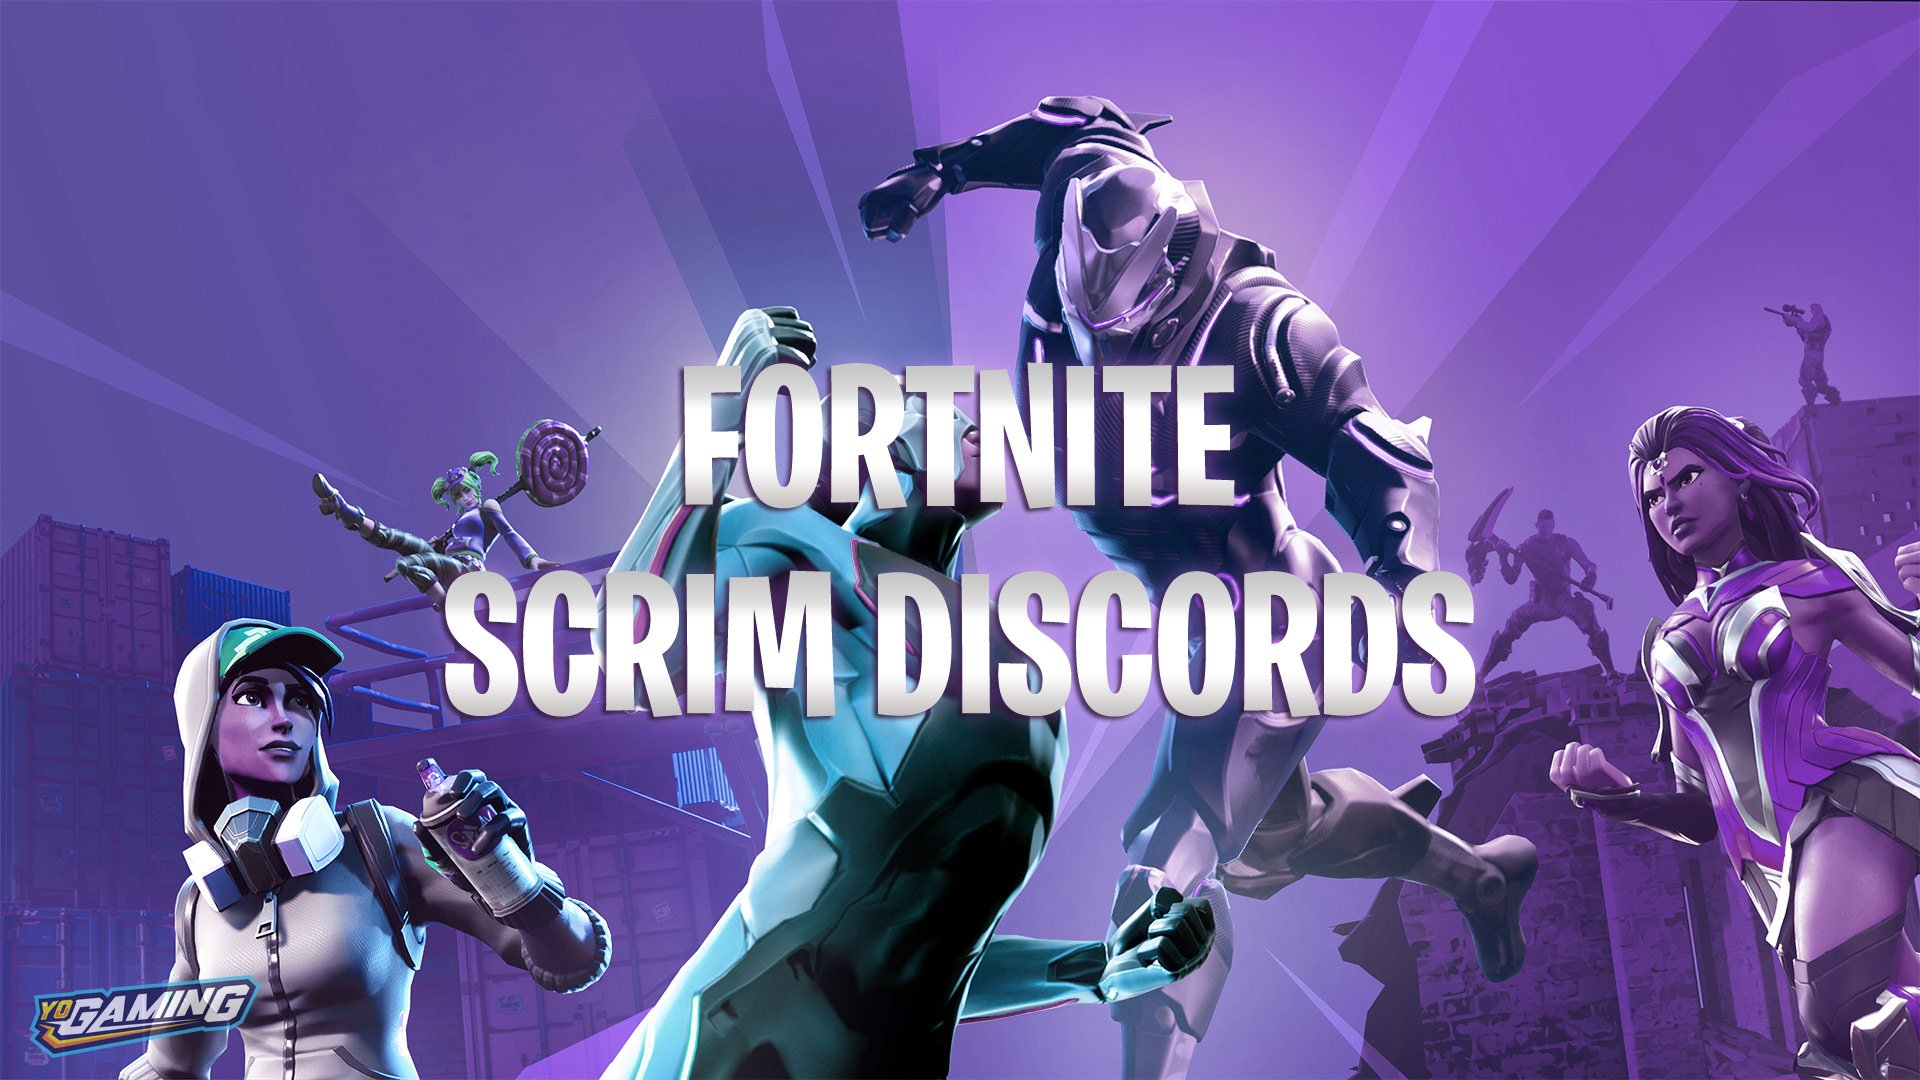 fortnite discords with pro scrims snipes solo duo squad updated april 2019 - live ps4 fortnite scrims